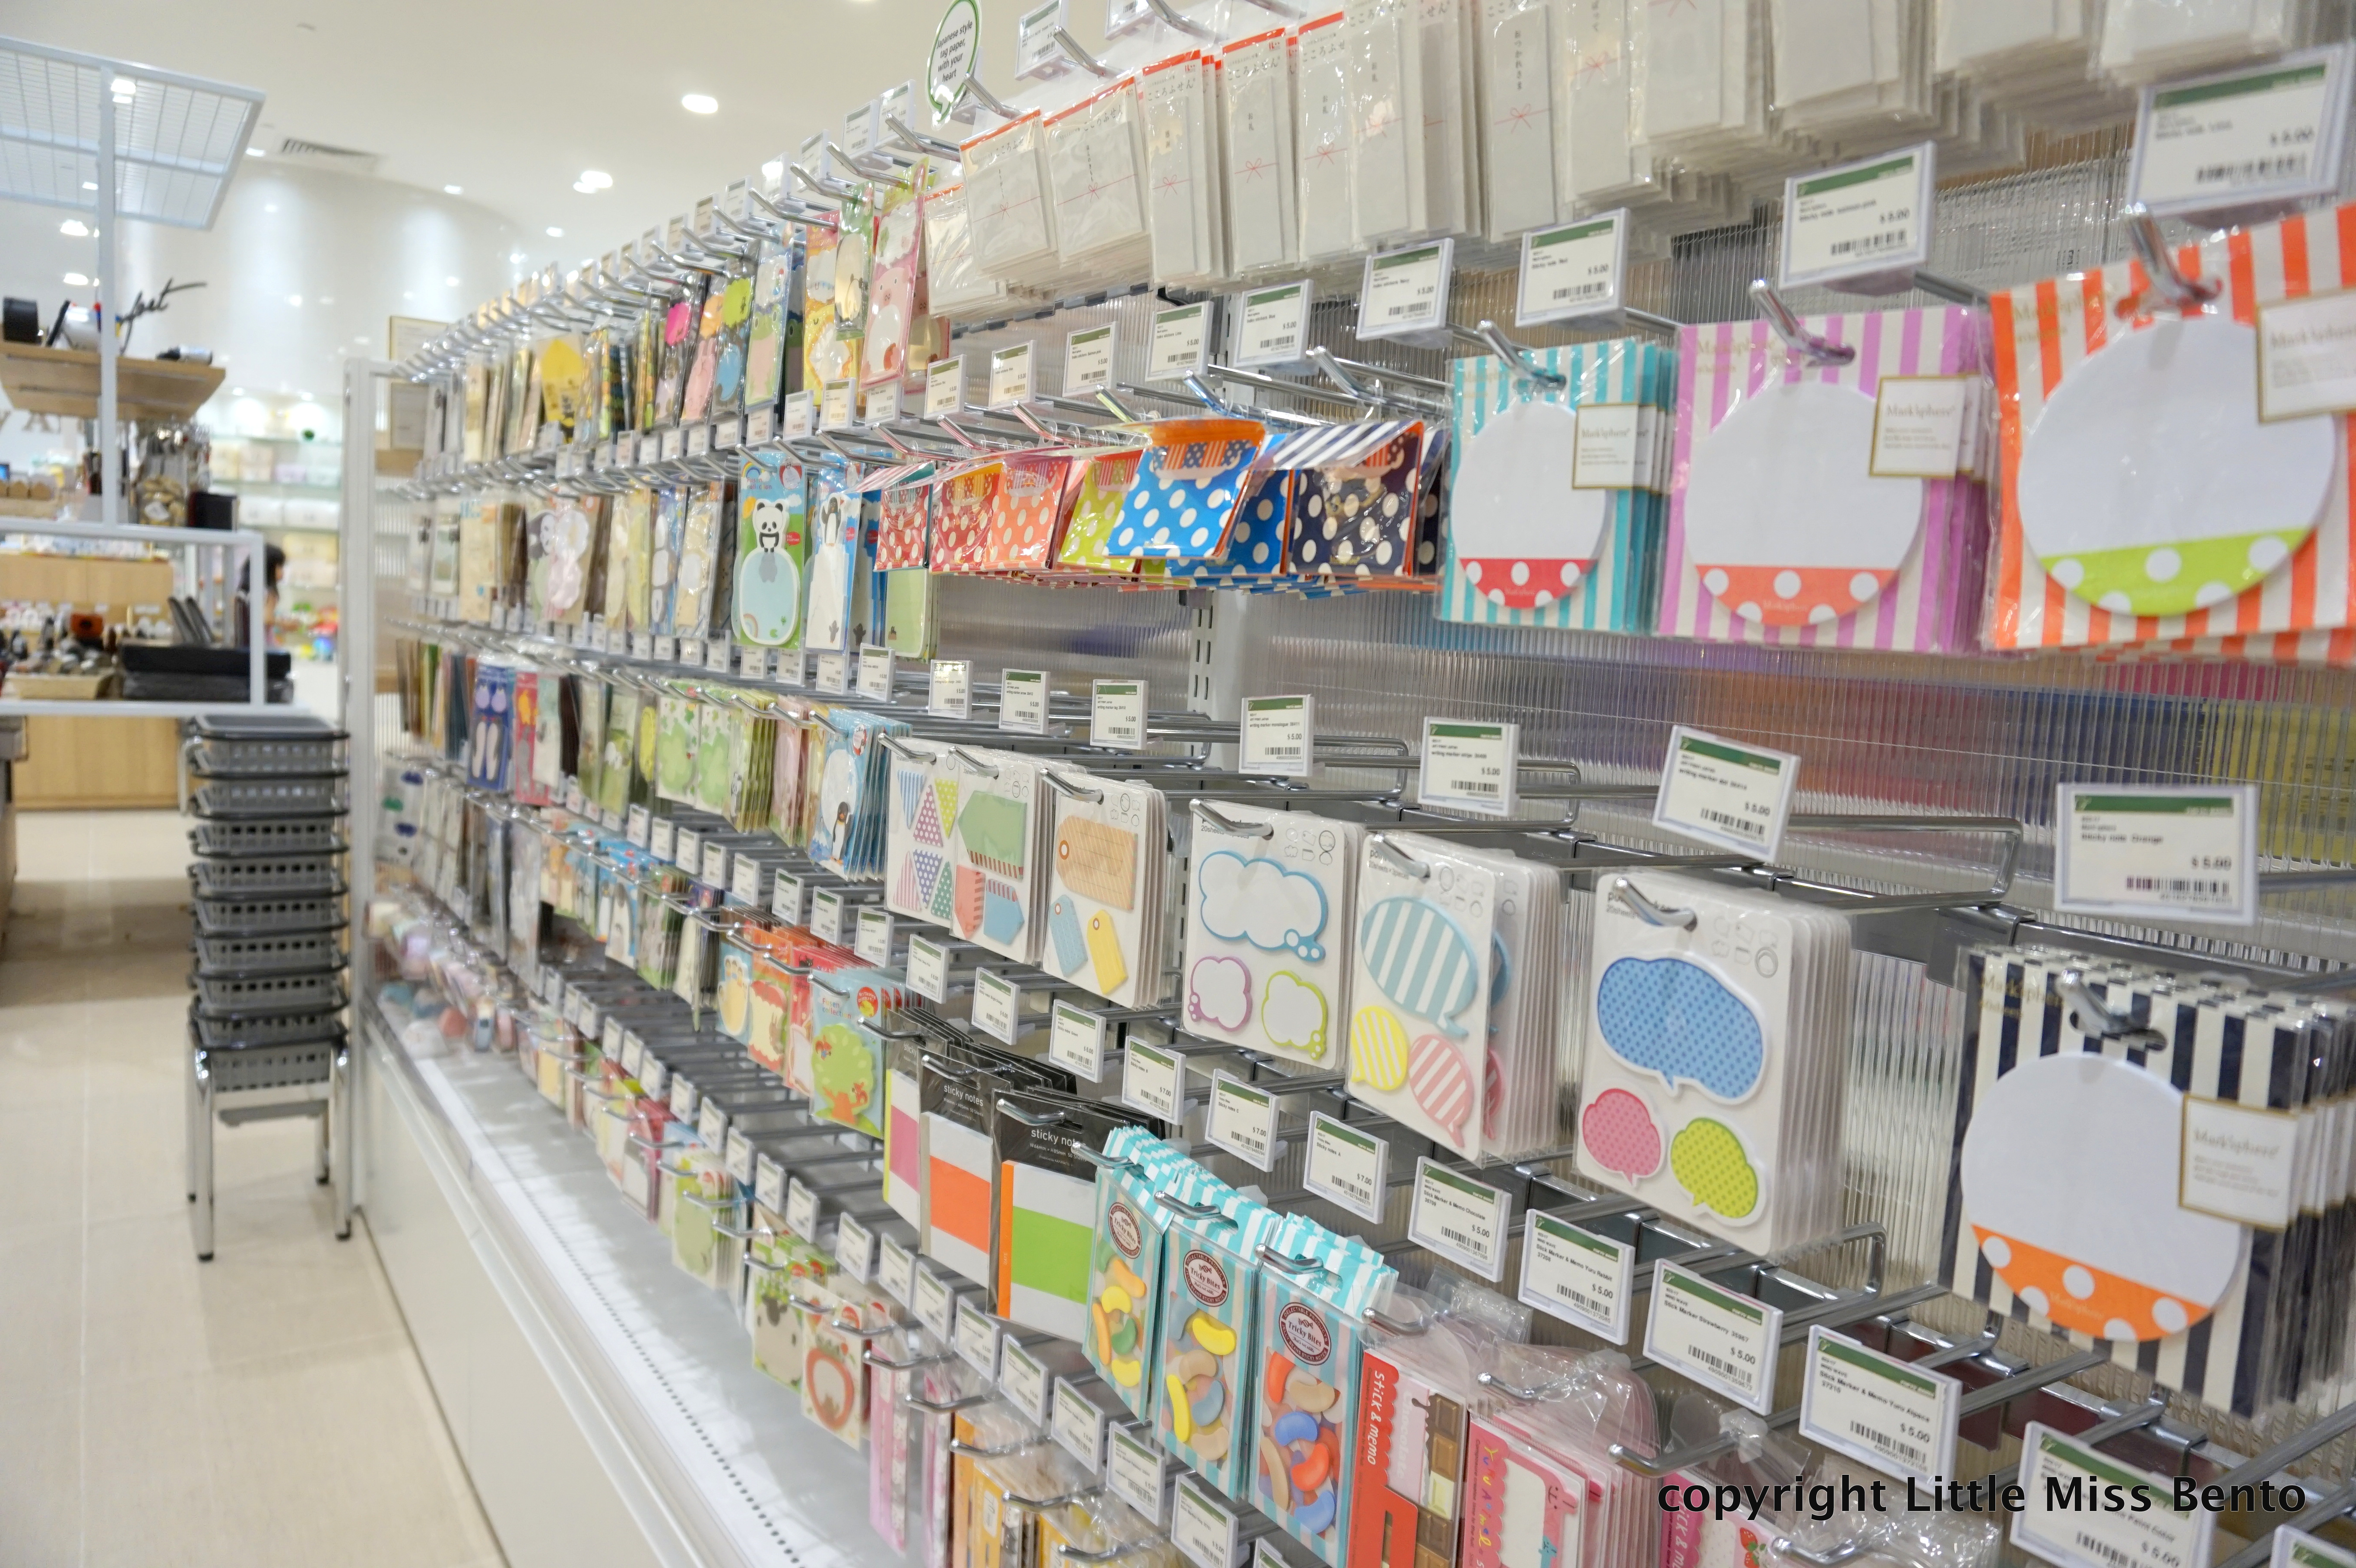 New Store] Tokyu Hands Opens at Westgate (Part 1) - Little